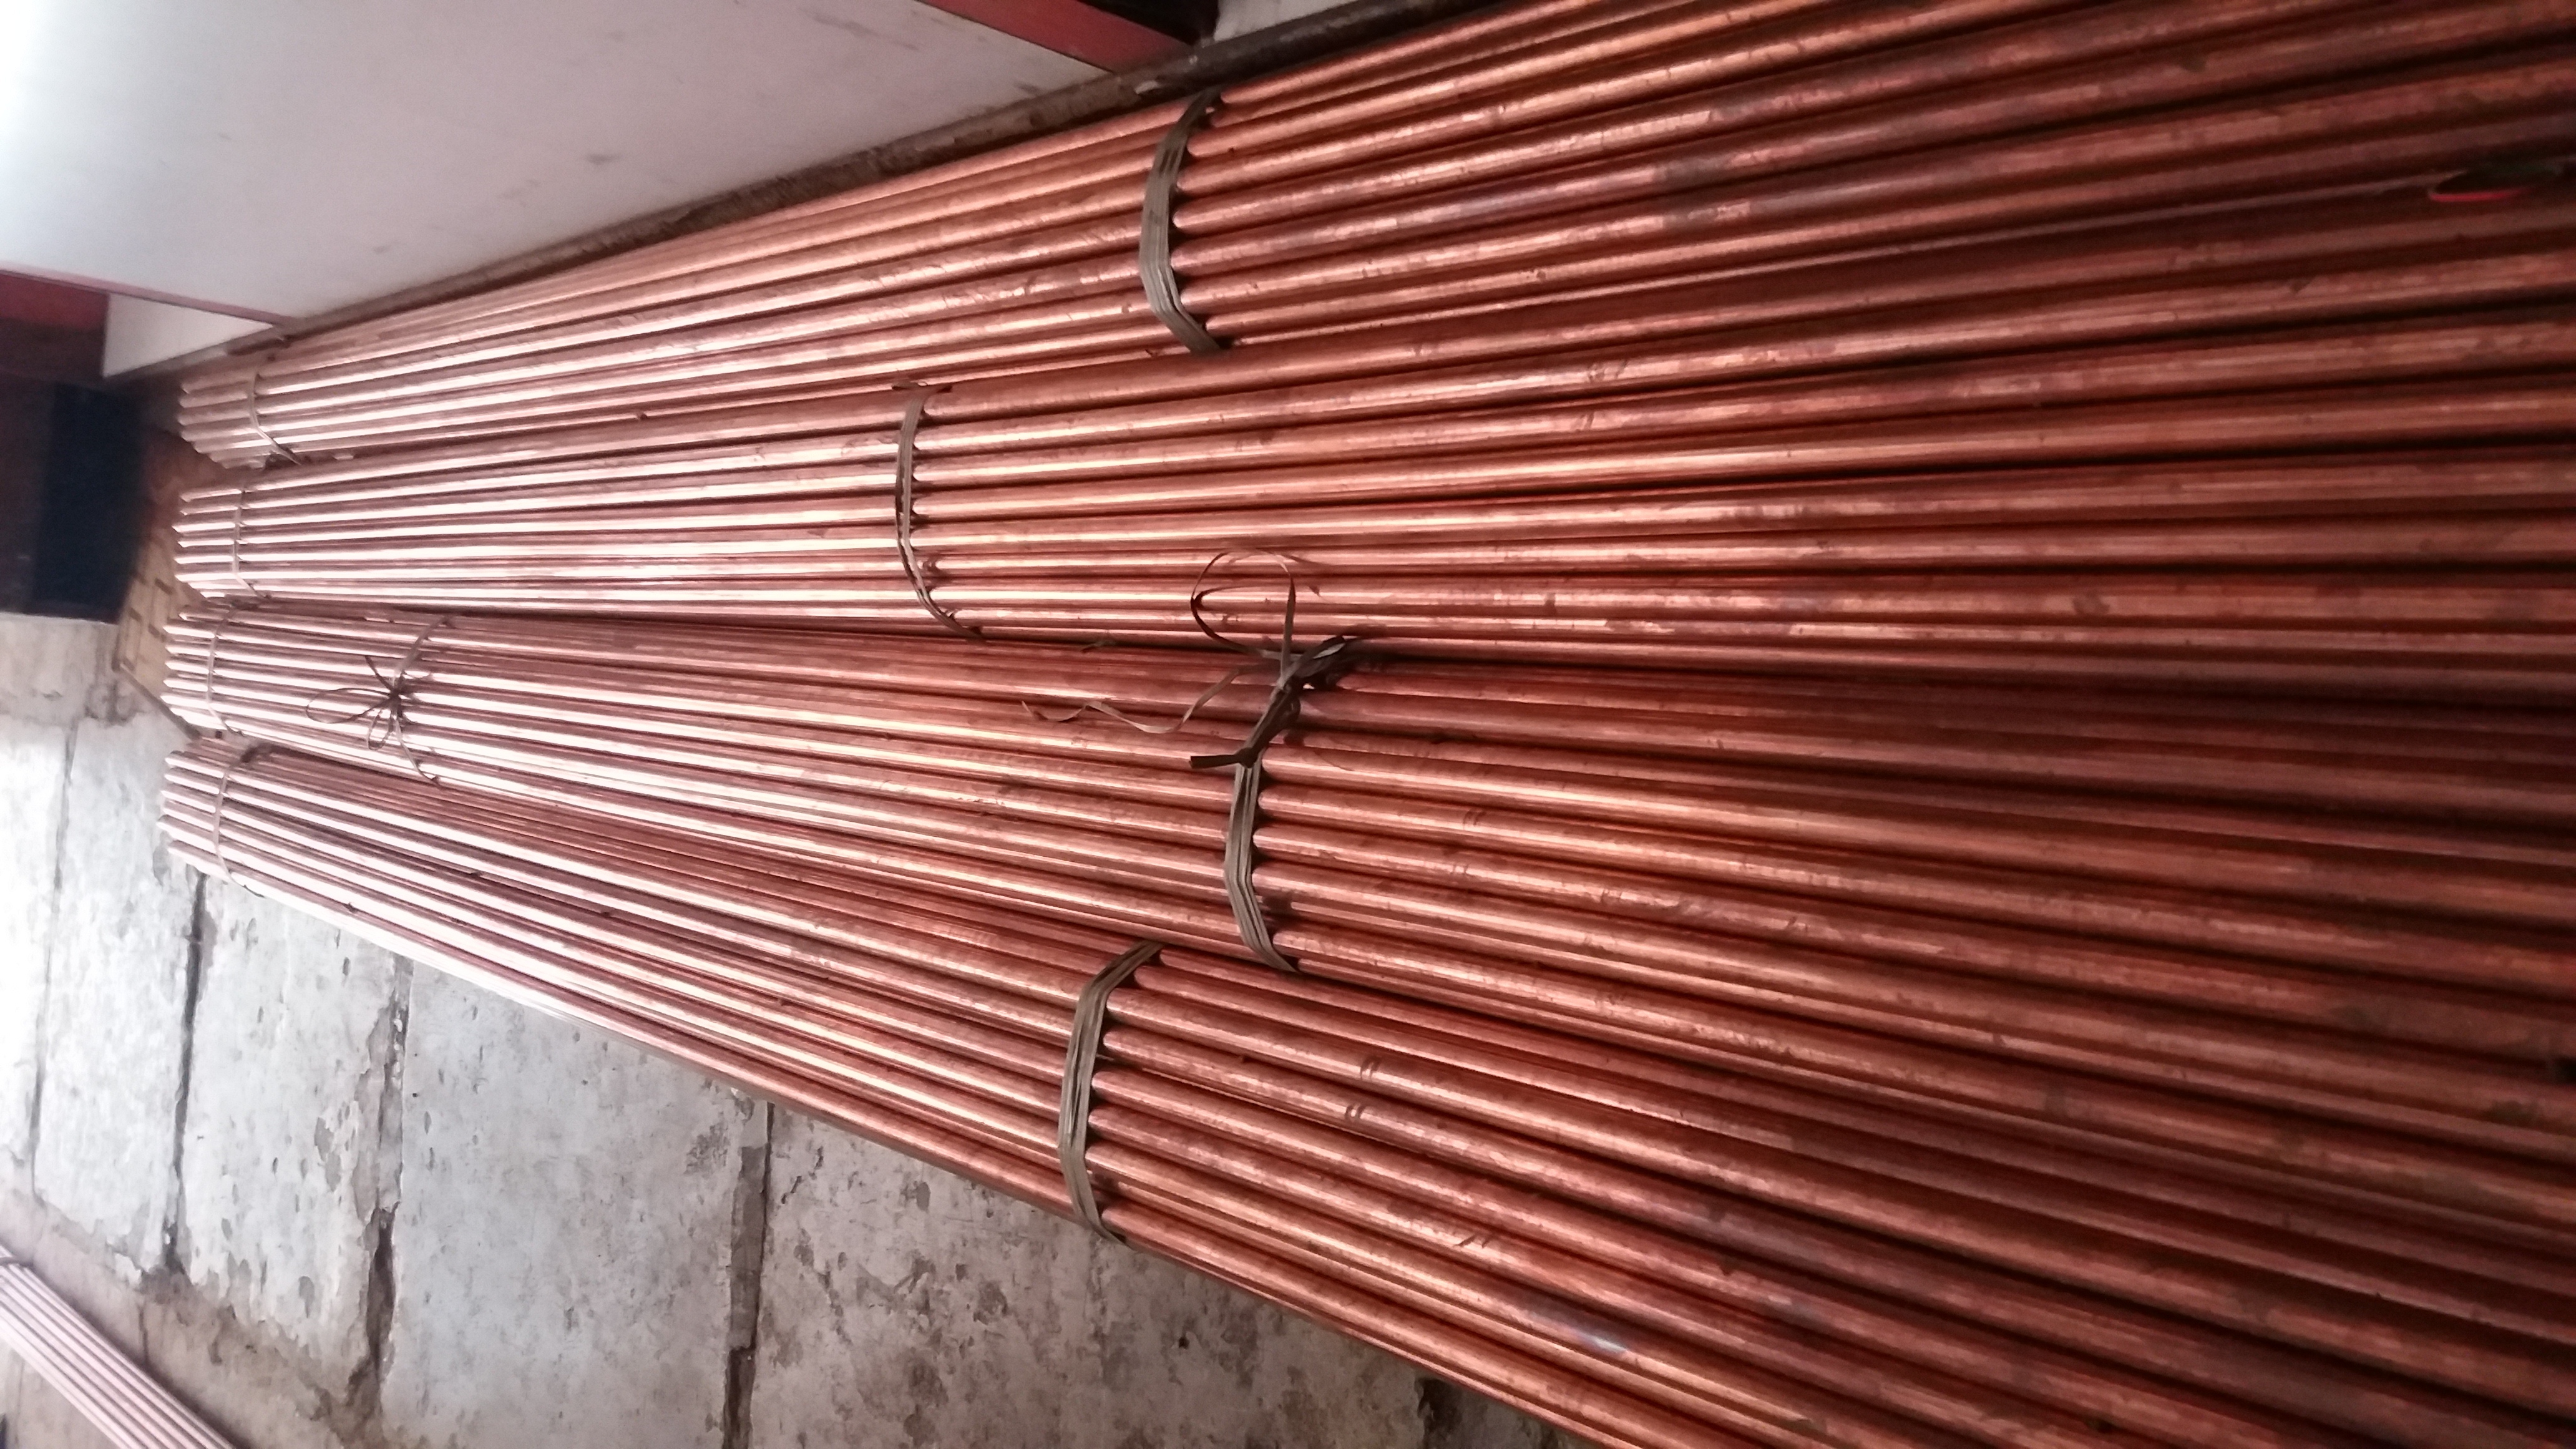 COPPER PIPE AND TUBES